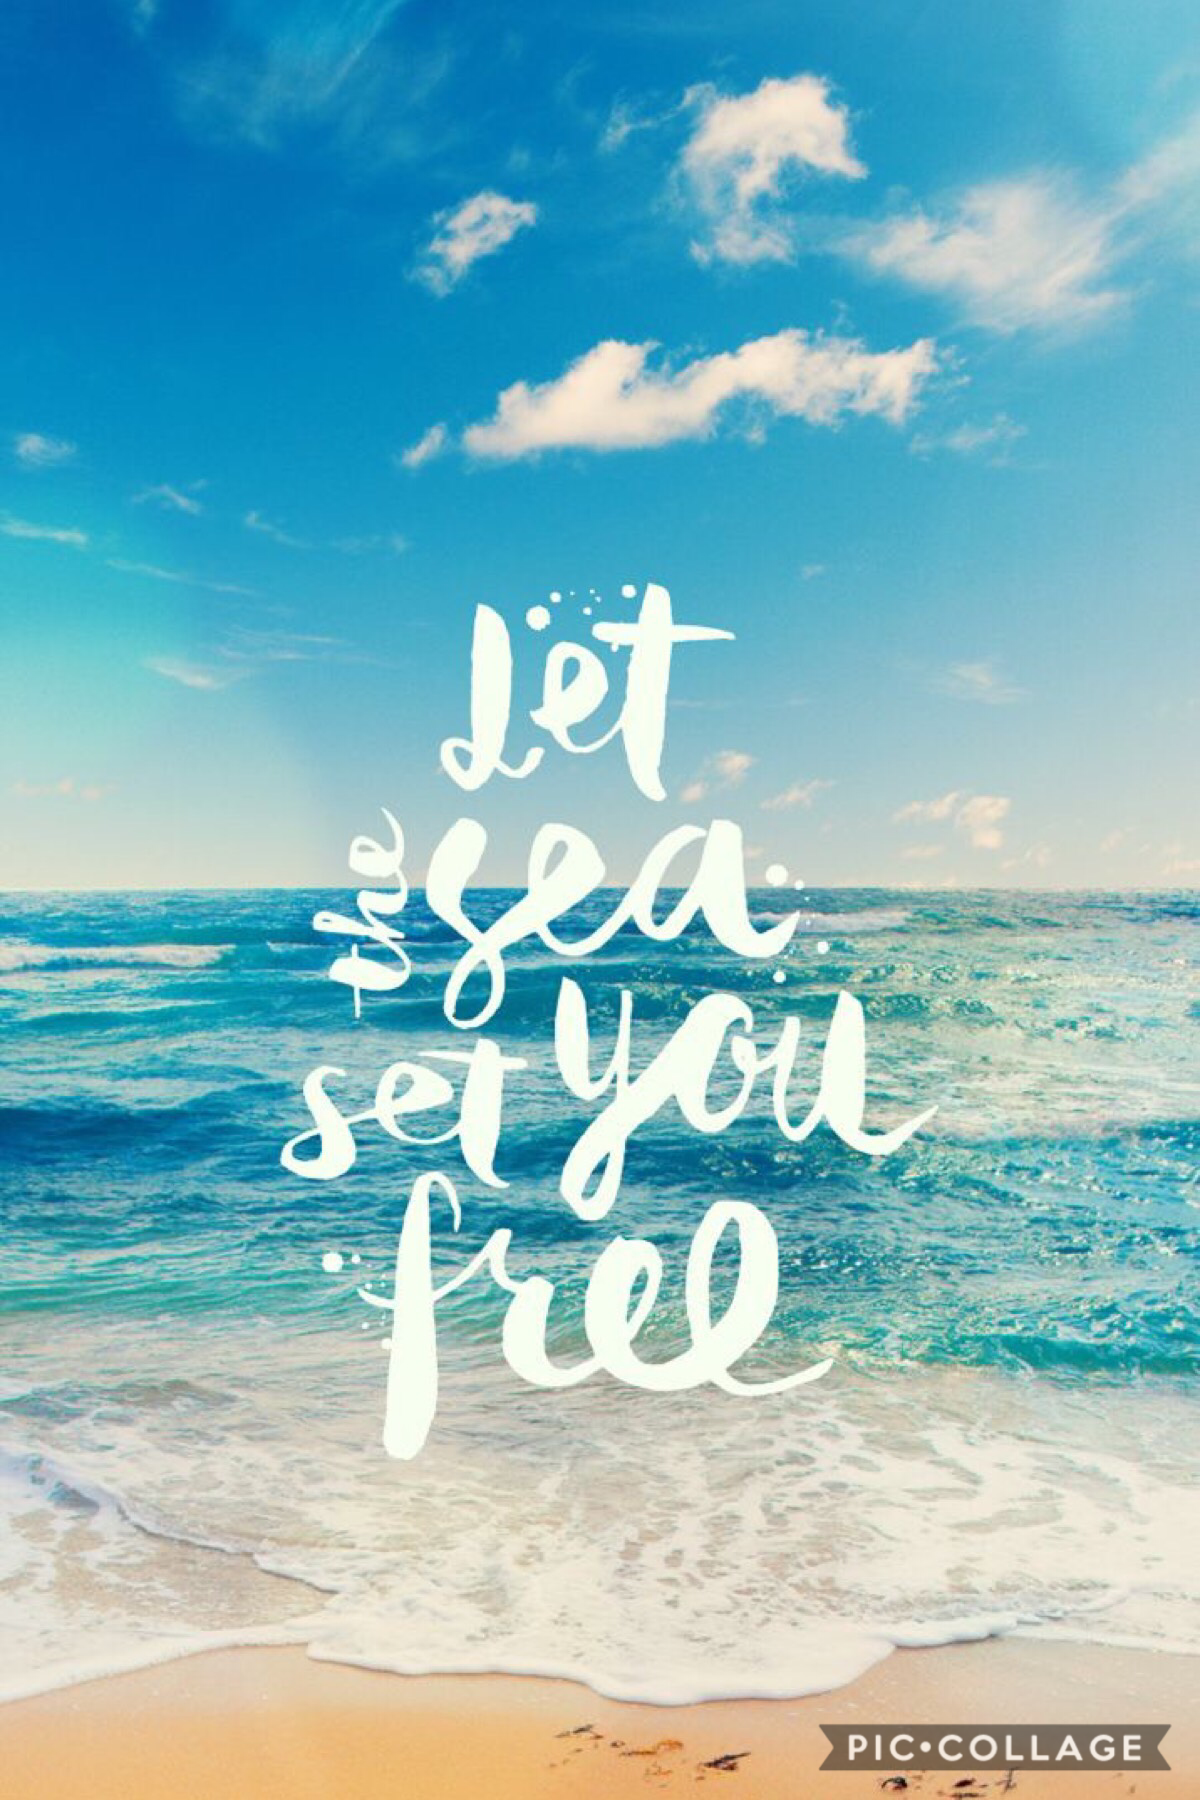 Let the sea set you free and tap the heart button